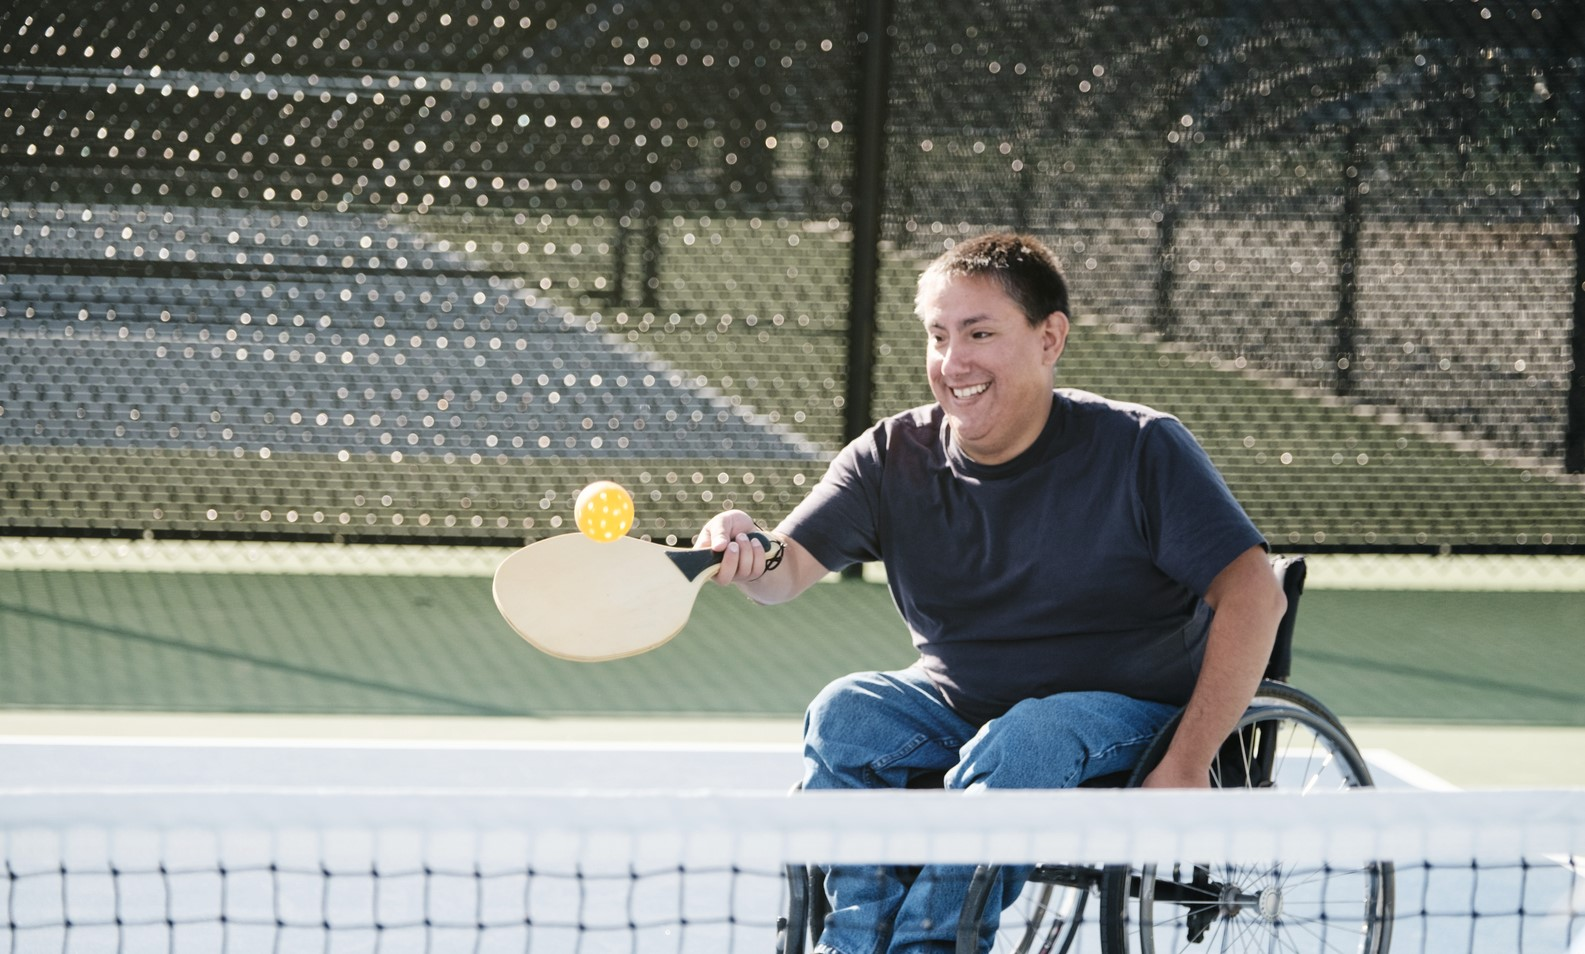 Social Care - A young man in a wheelchair playing the game of pickleball